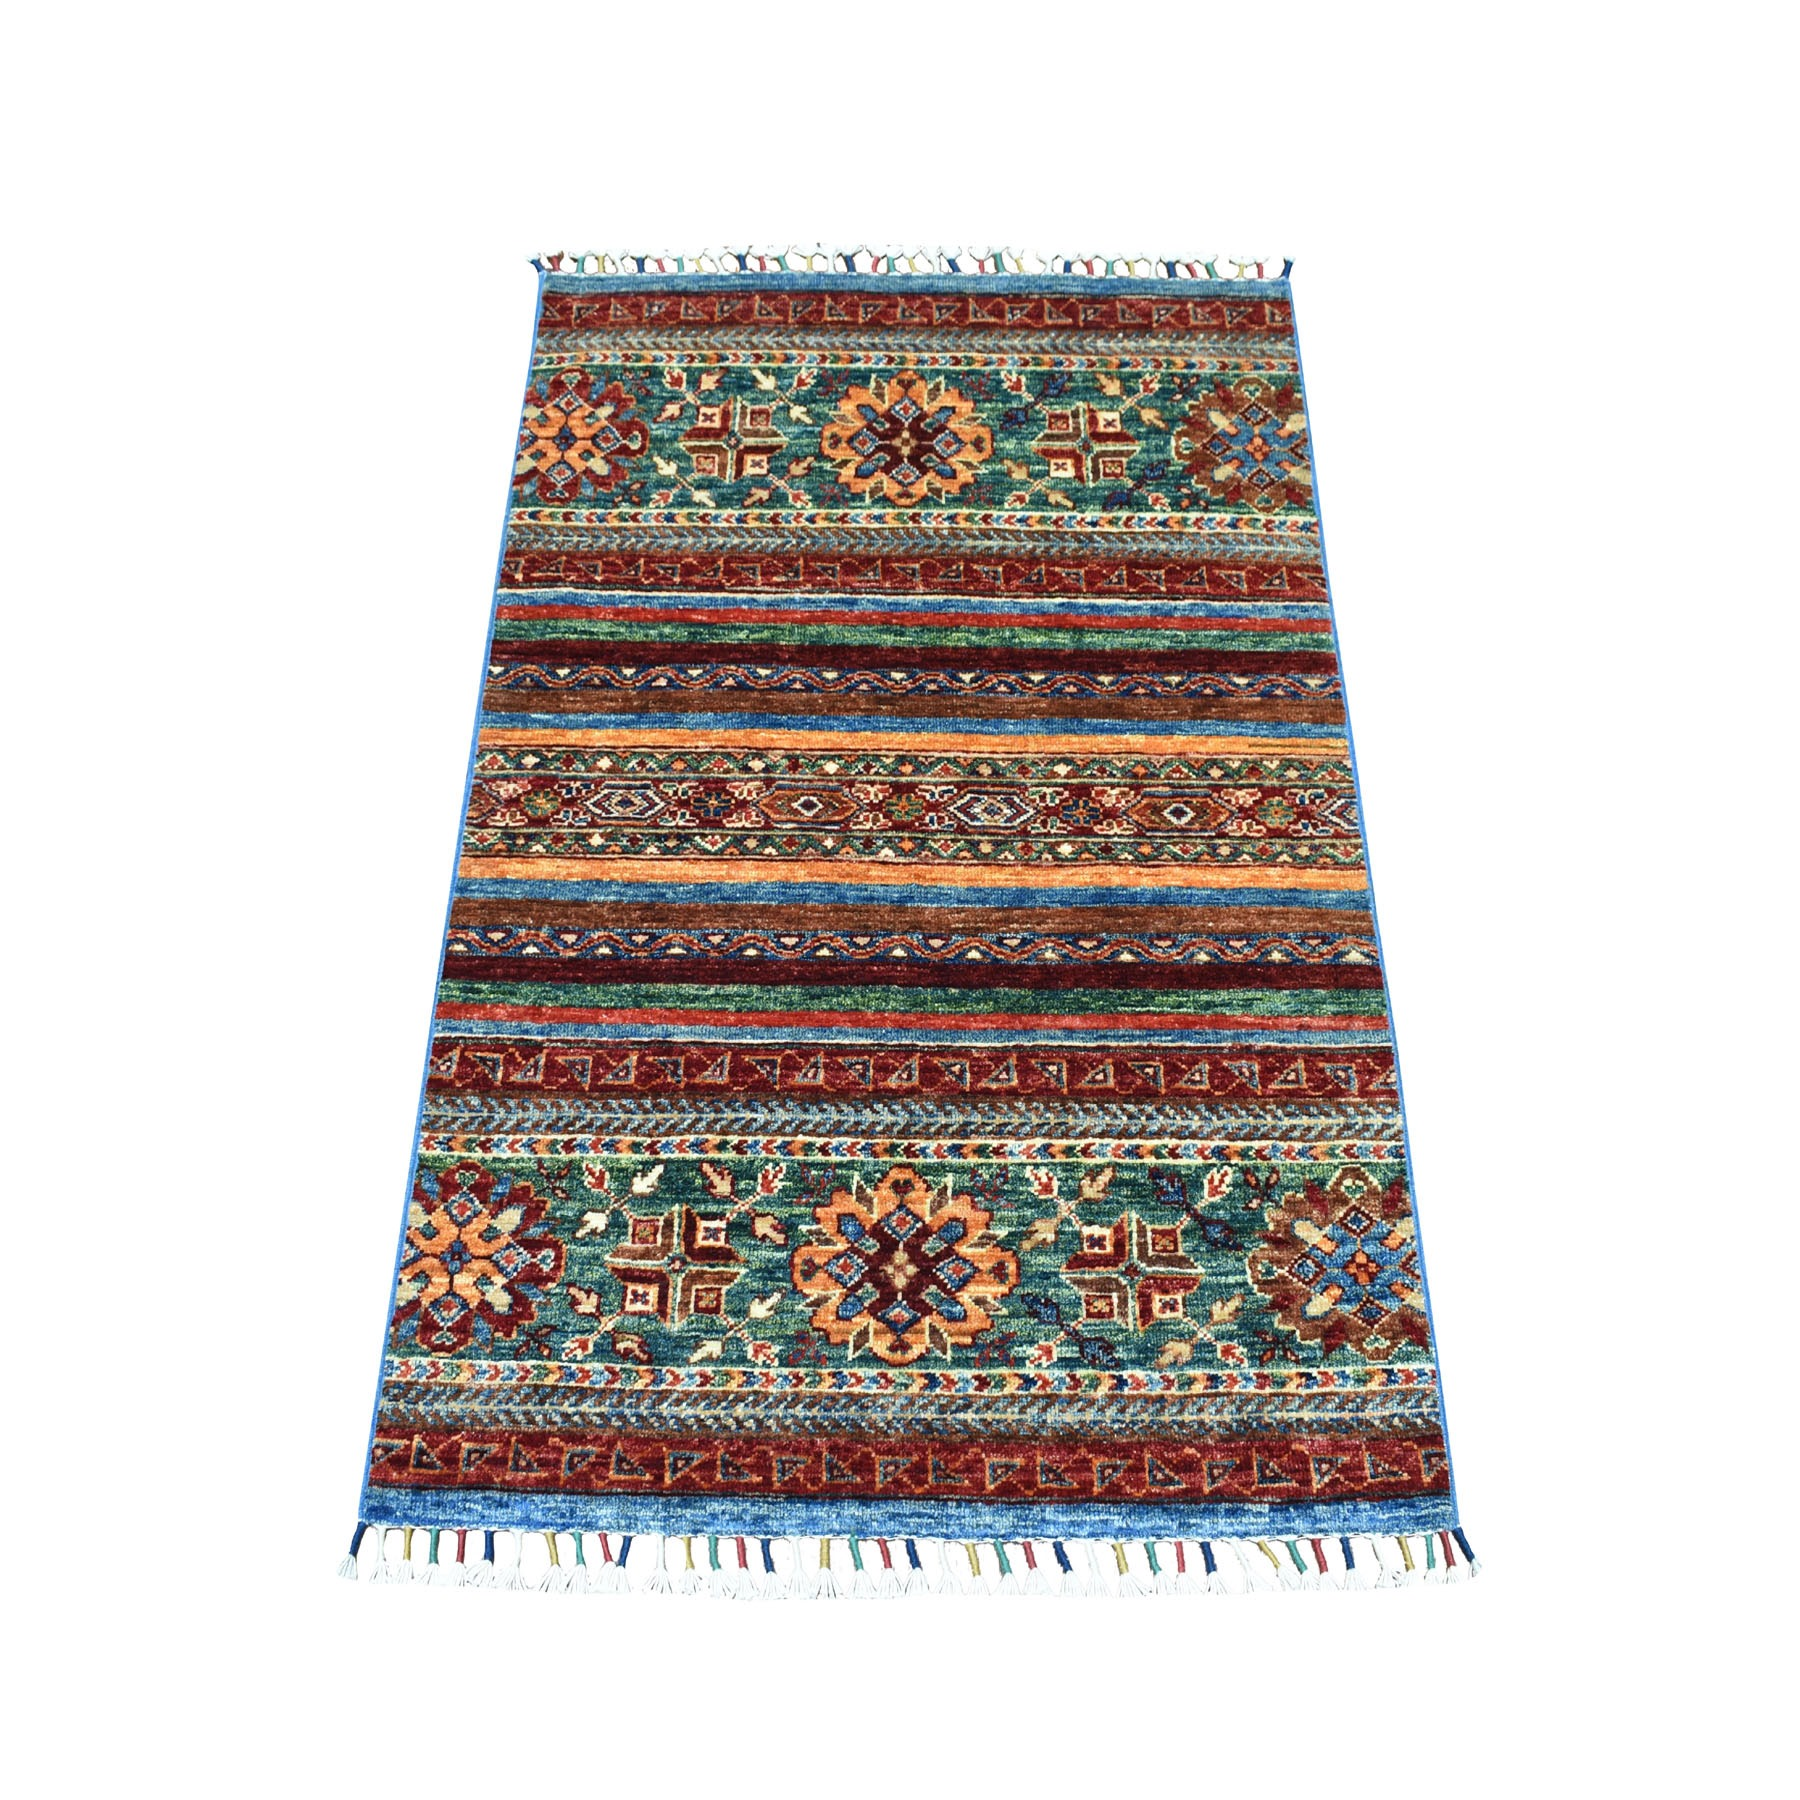 "2'8""x4' Khorjin Design Colorful Super Kazak Pure Wool Hand Knotted Oriental Rug"